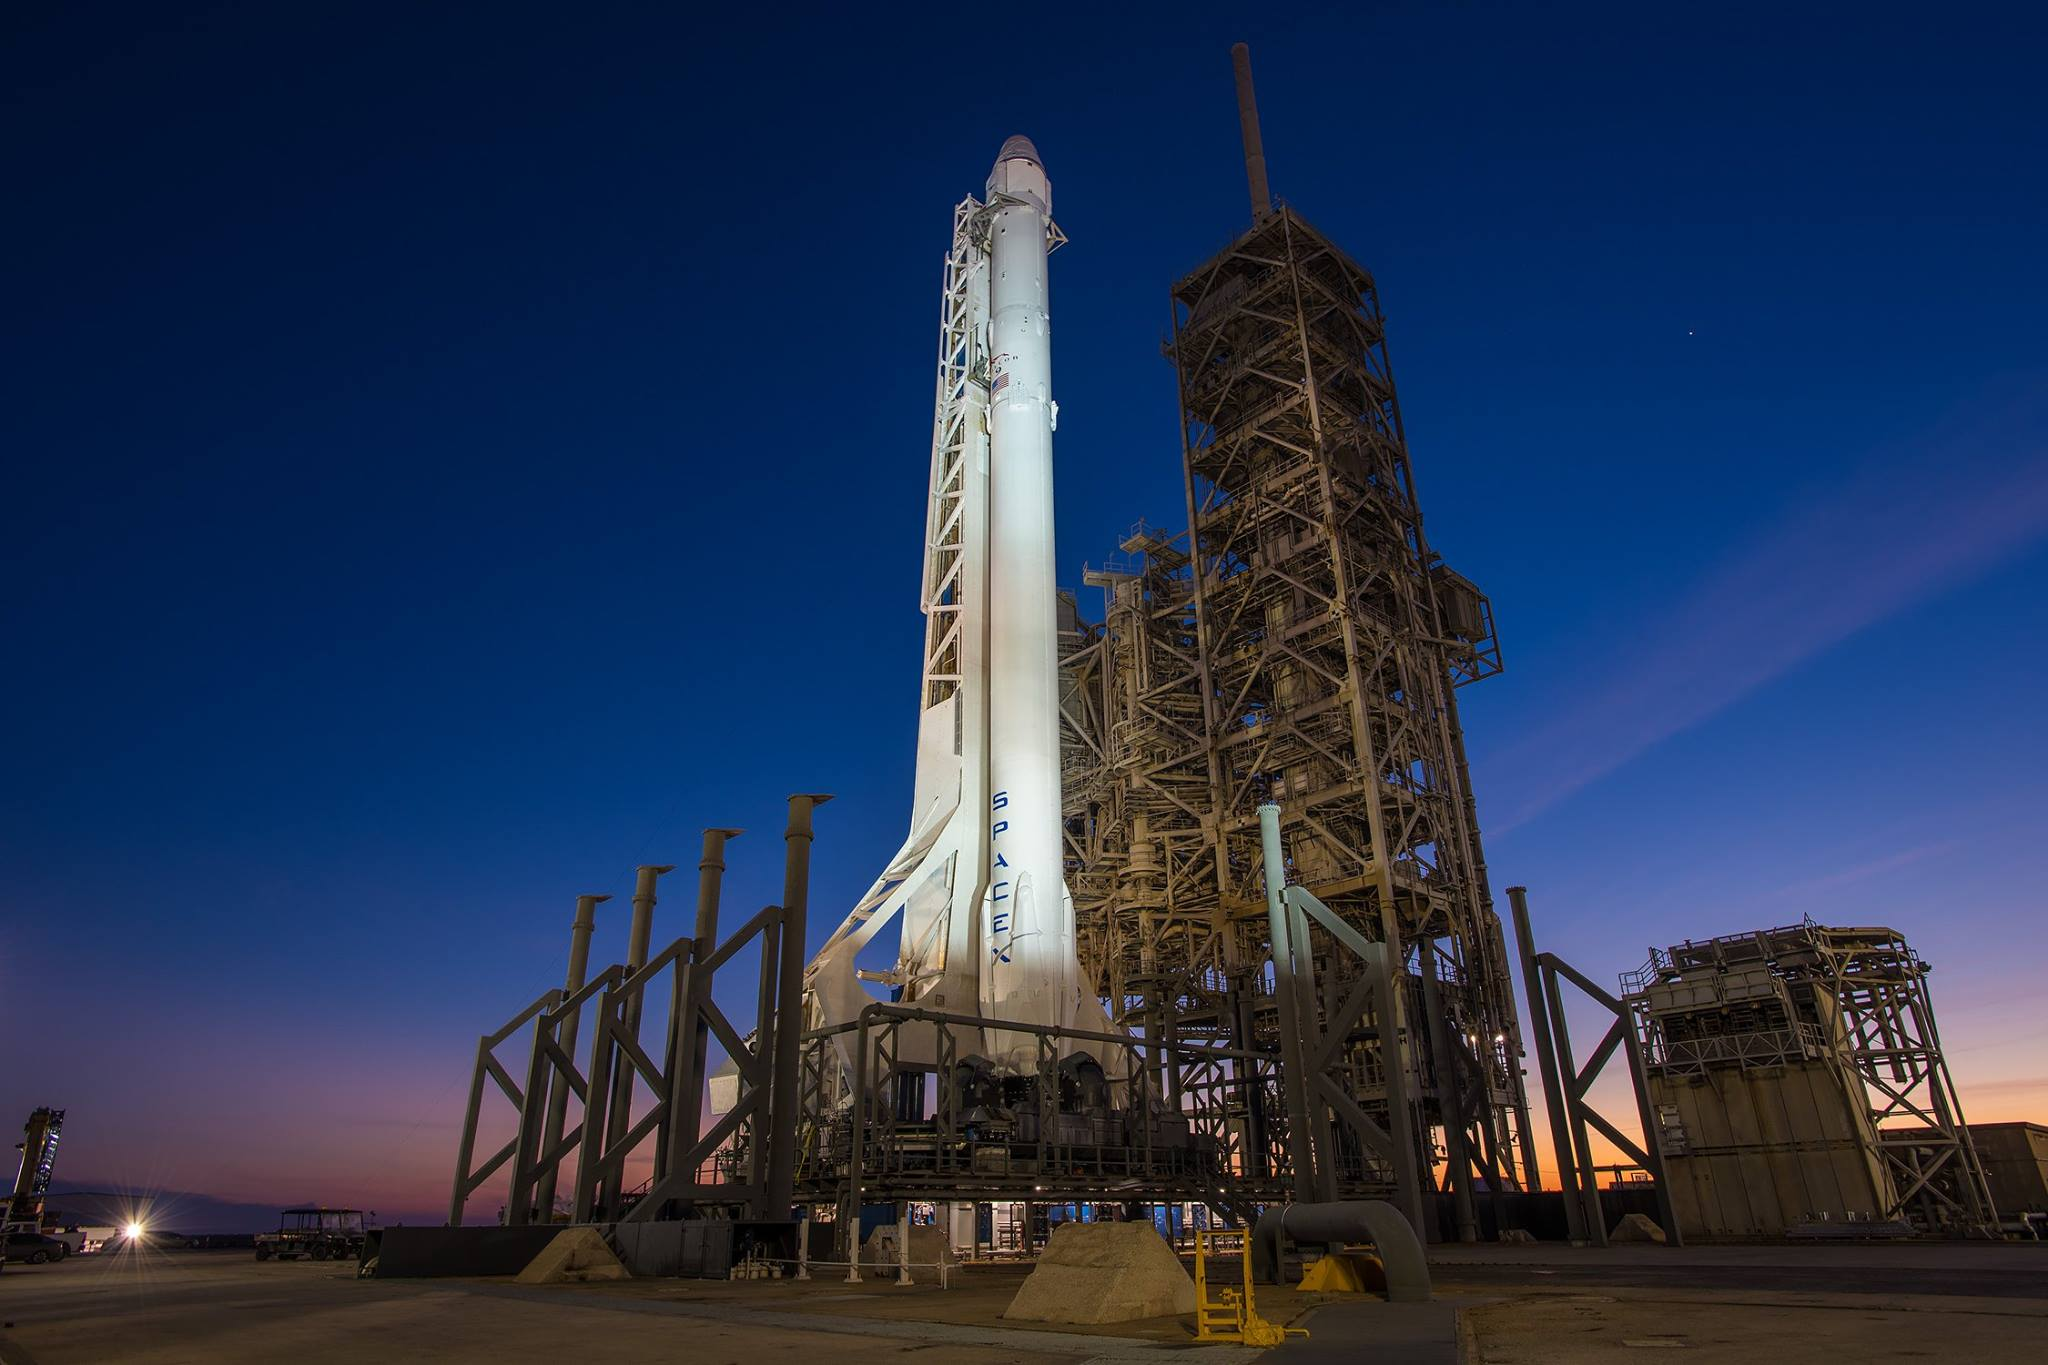 SpaceX said Monday it will fly two people to the moon next year, a feat not attempted since NASA's Apollo heyday close to half a century ago. (Photo: SpaceX/Facebook)